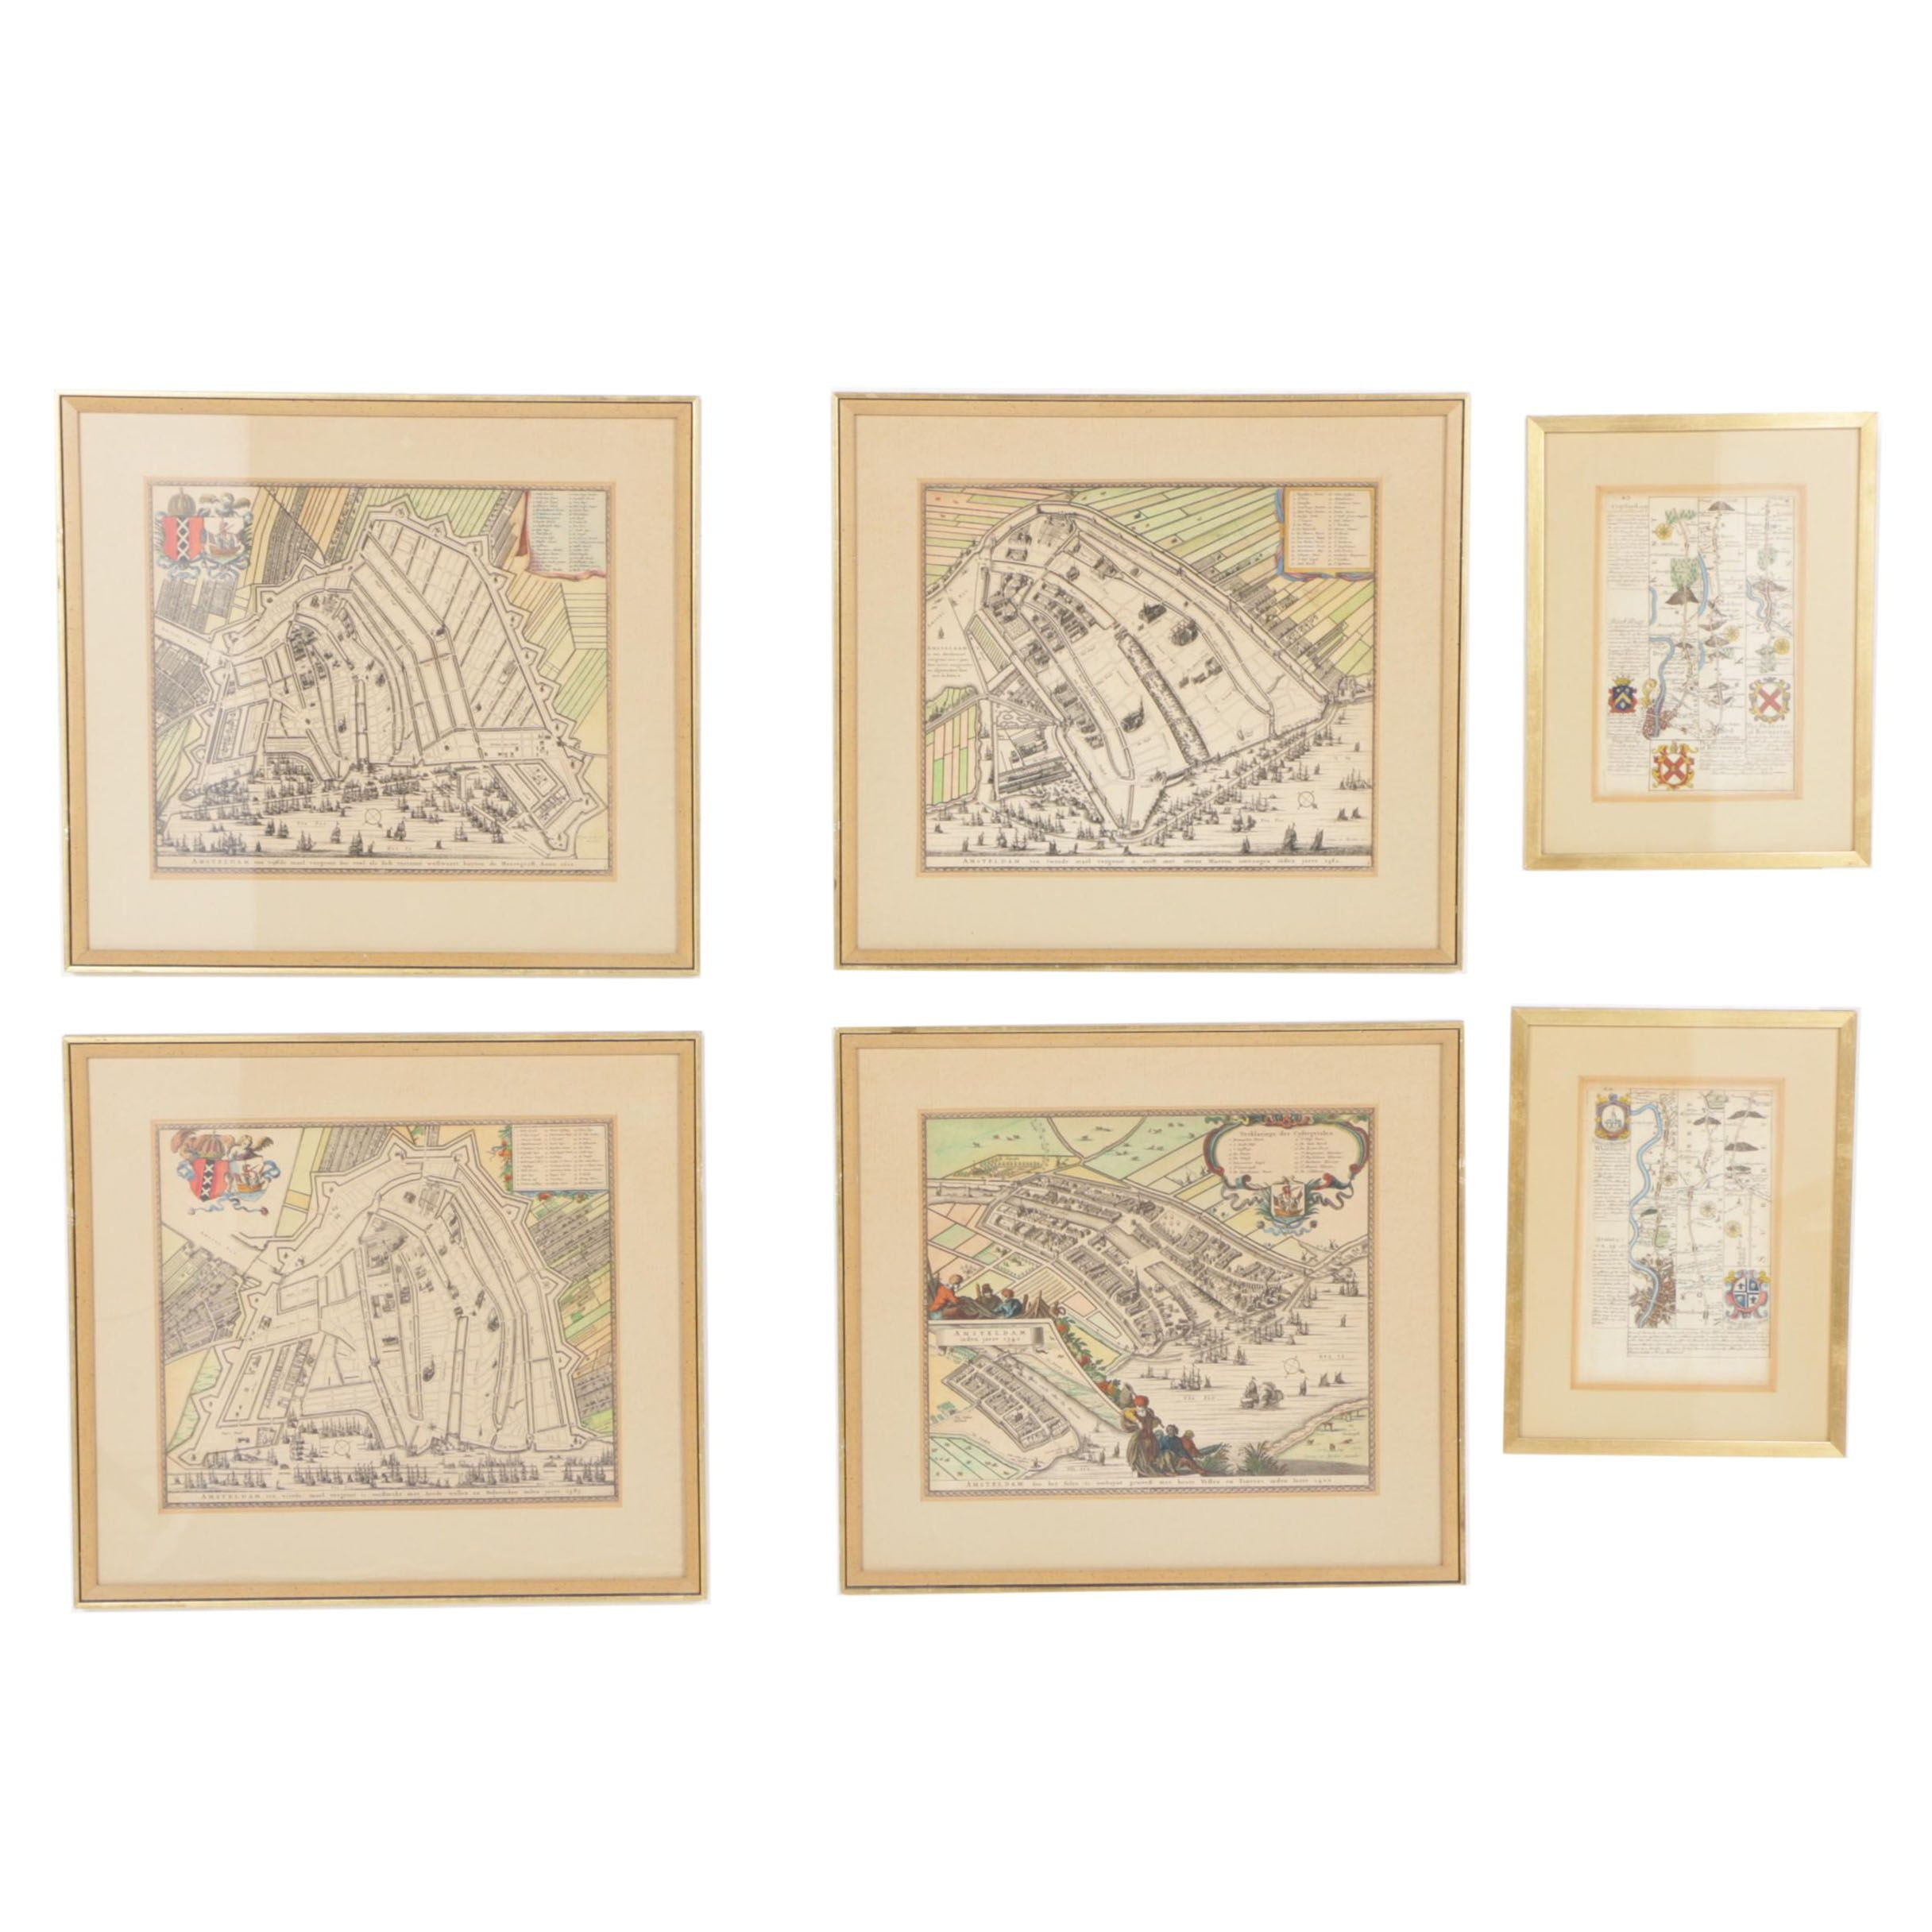 Collection of Hand-Colored Intaglio Prints of Maps